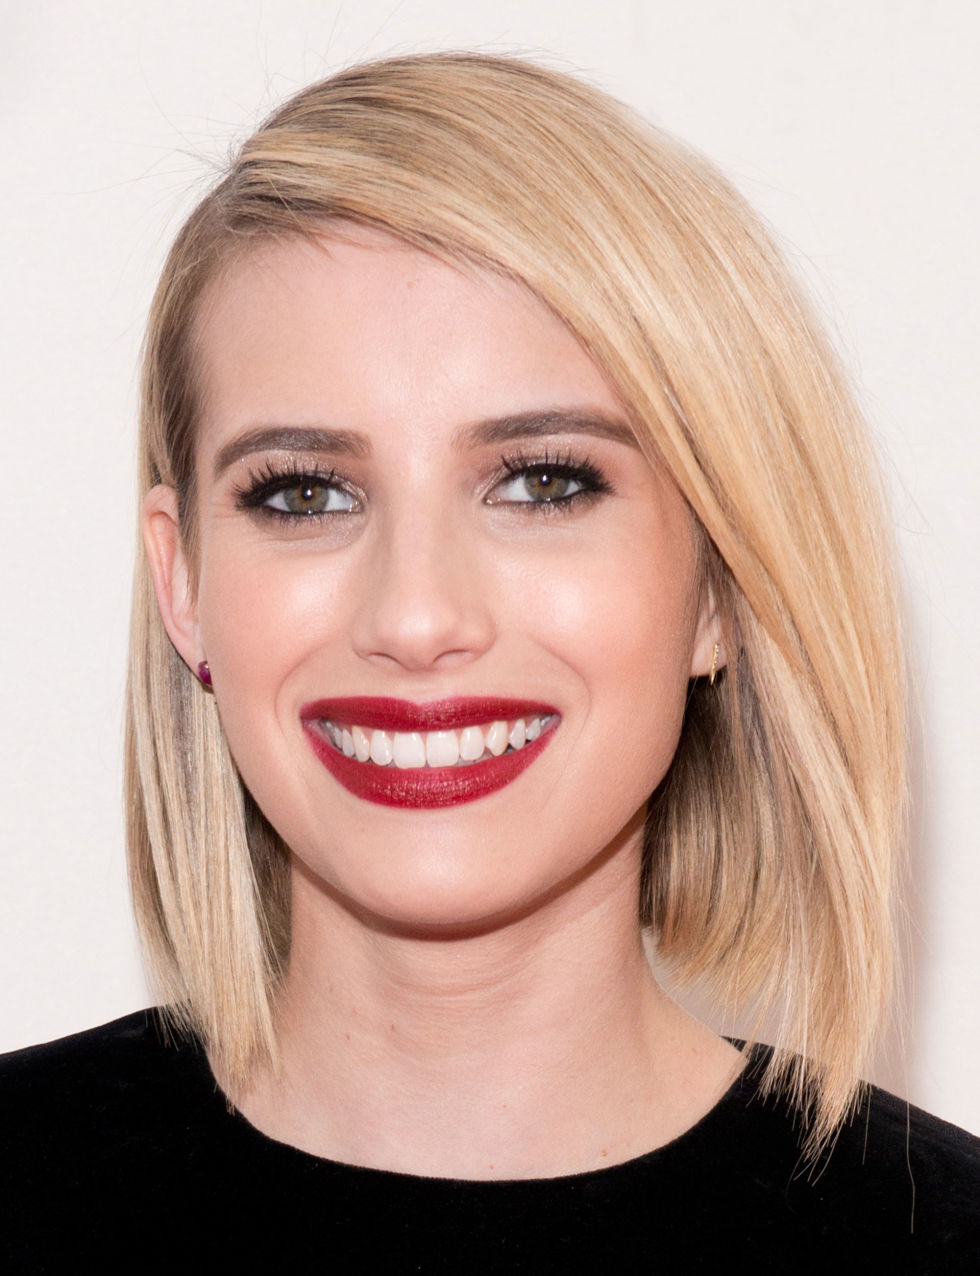 Structured Bob Hairstyles Best Bob For Your Face Shape Celebrity Bob Hairstyle